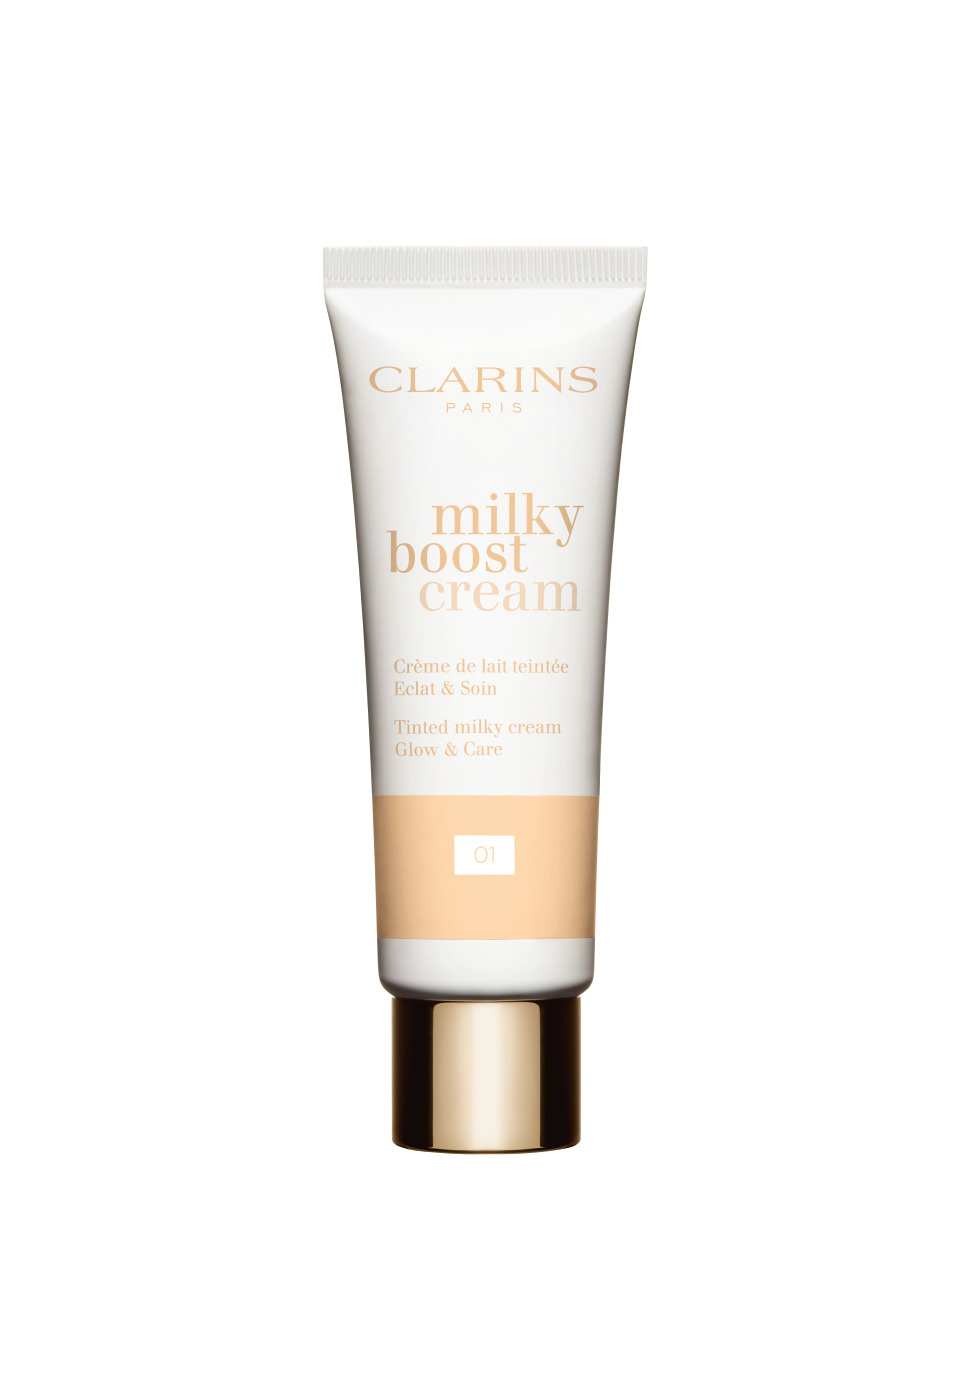 Clarins lance « Milky Boost Cream » le soin make-up avec du lait !